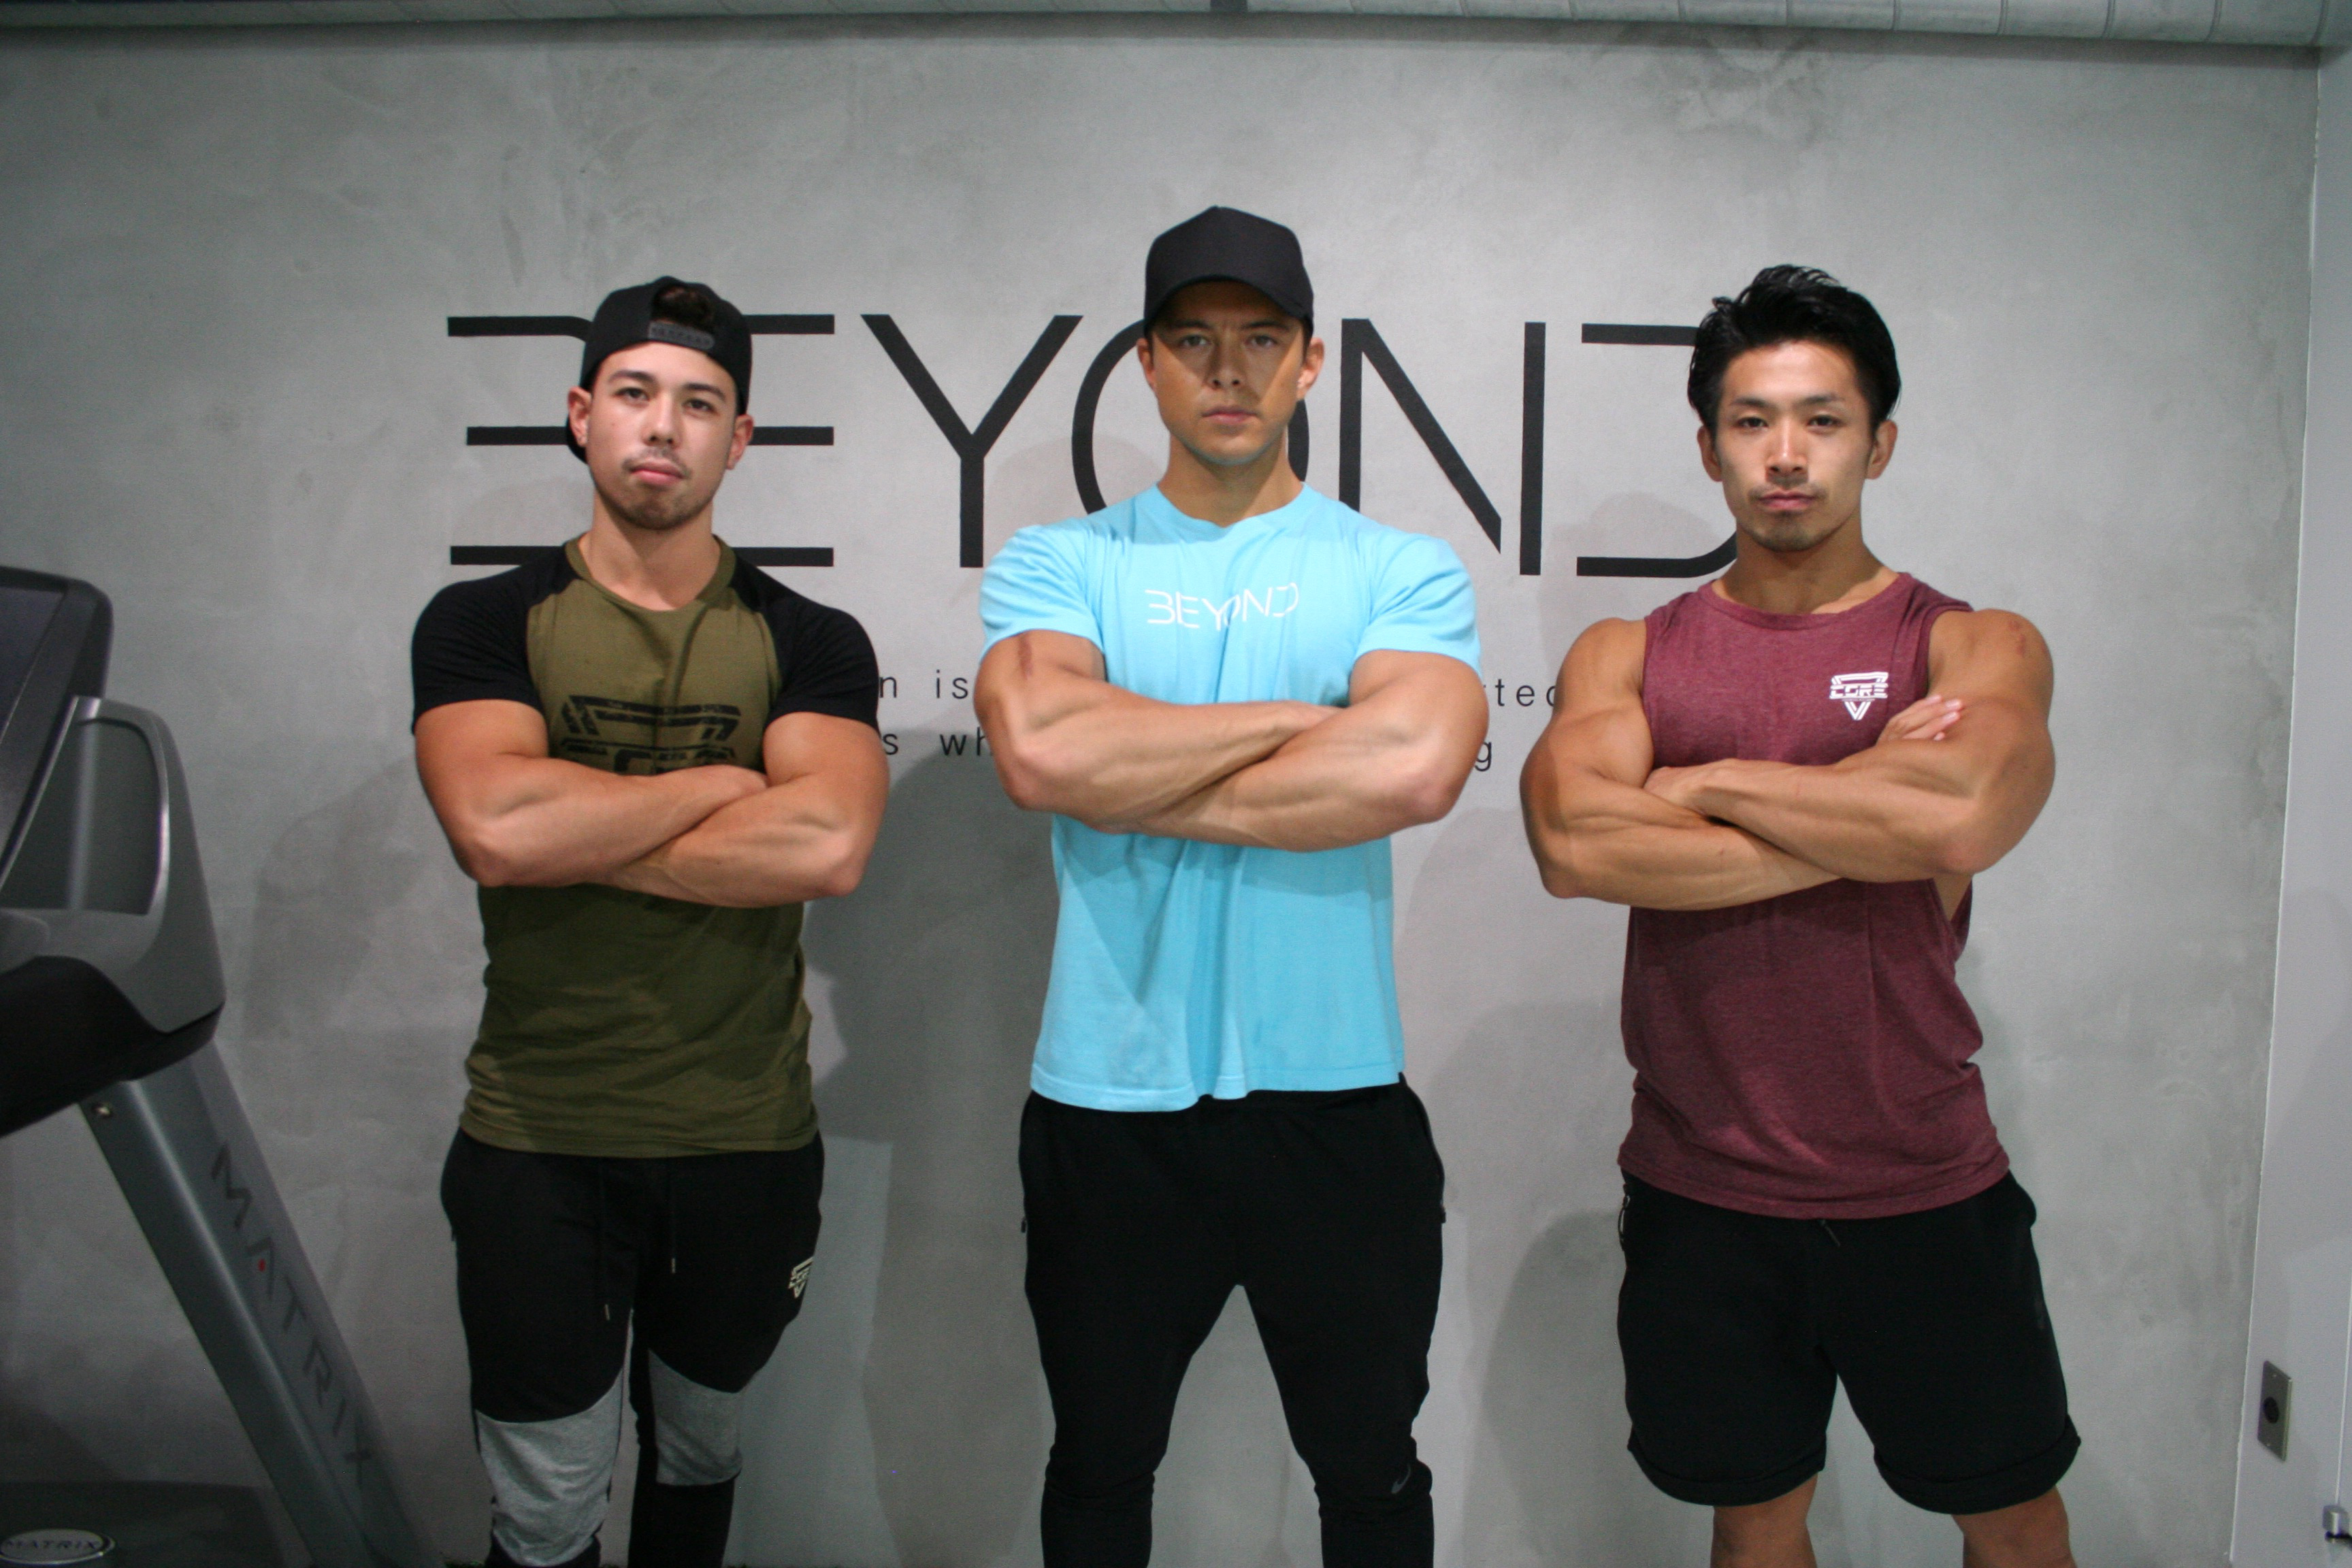 Fighting fit: Shun Kaneko, Edward Kato and Yukihiro Yuasa present a different figure to the svelte physiques of young men who appear on Japanese TV and in magazines. They're hoping to show others that physiques come in many different sizes. | ALISA YAMASAKI